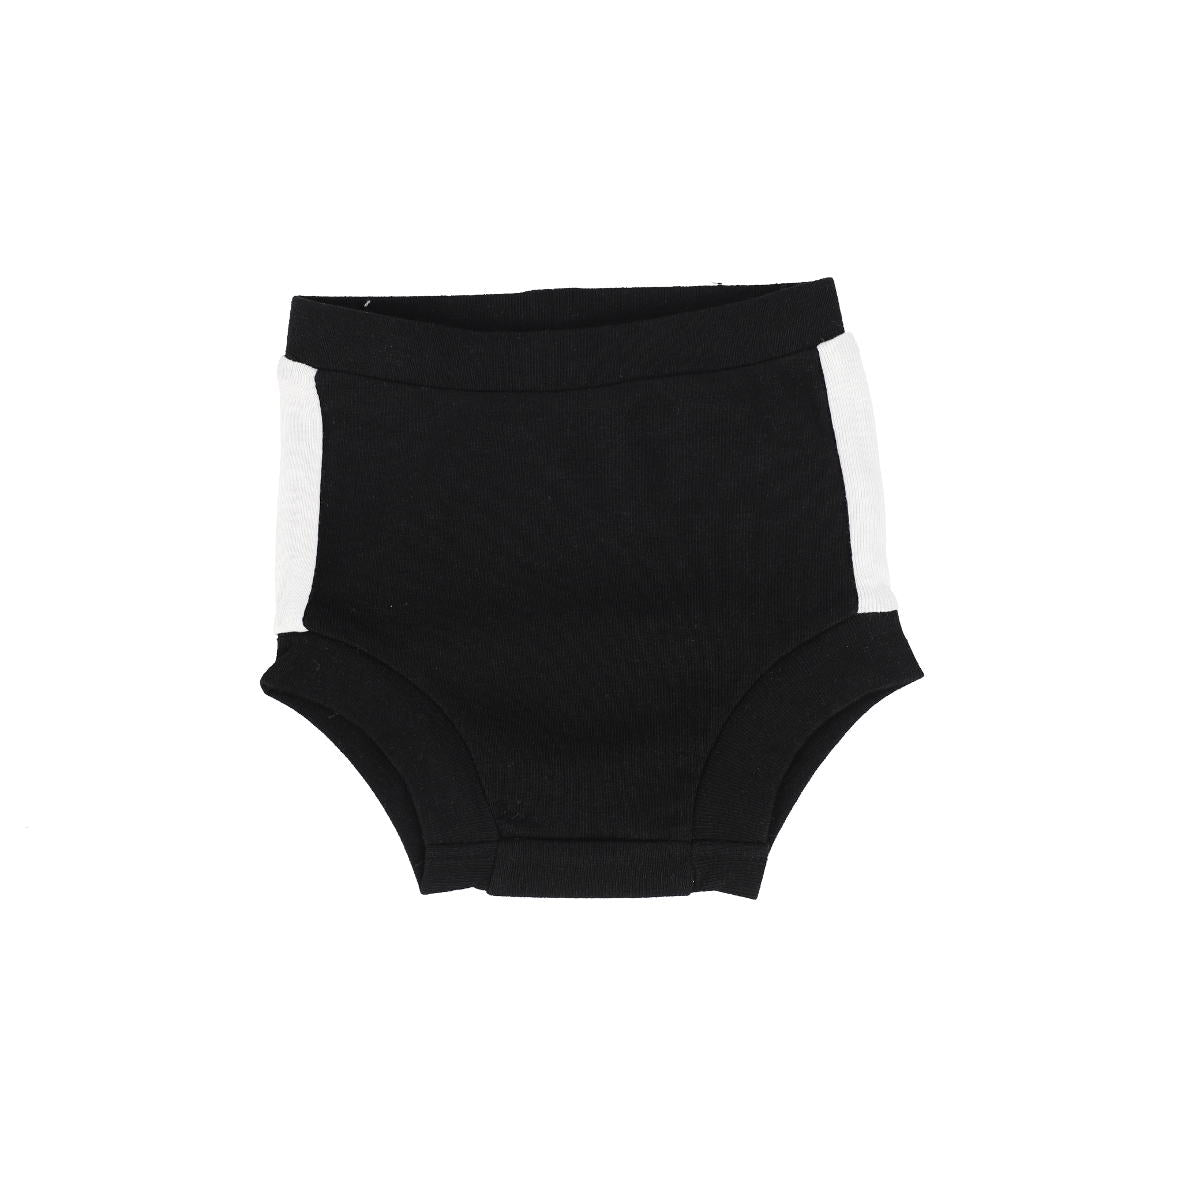 Analogie BlackWhite Linear High Waisted Bloomers